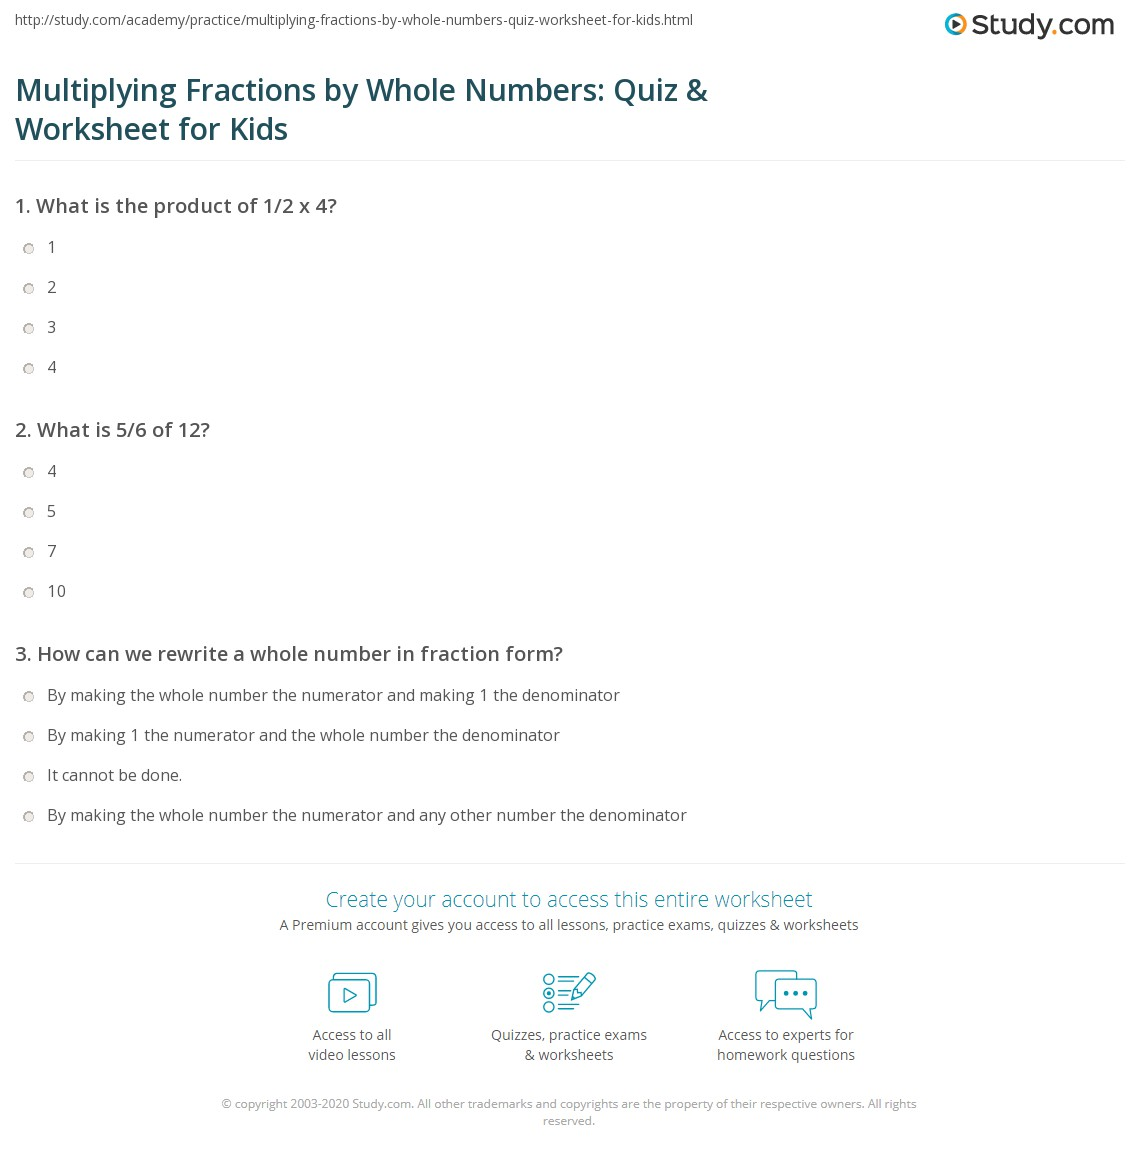 Multiply Fraction By Whole Number Worksheet worksheets for 3rd – Multiply Fraction by Whole Number Worksheet